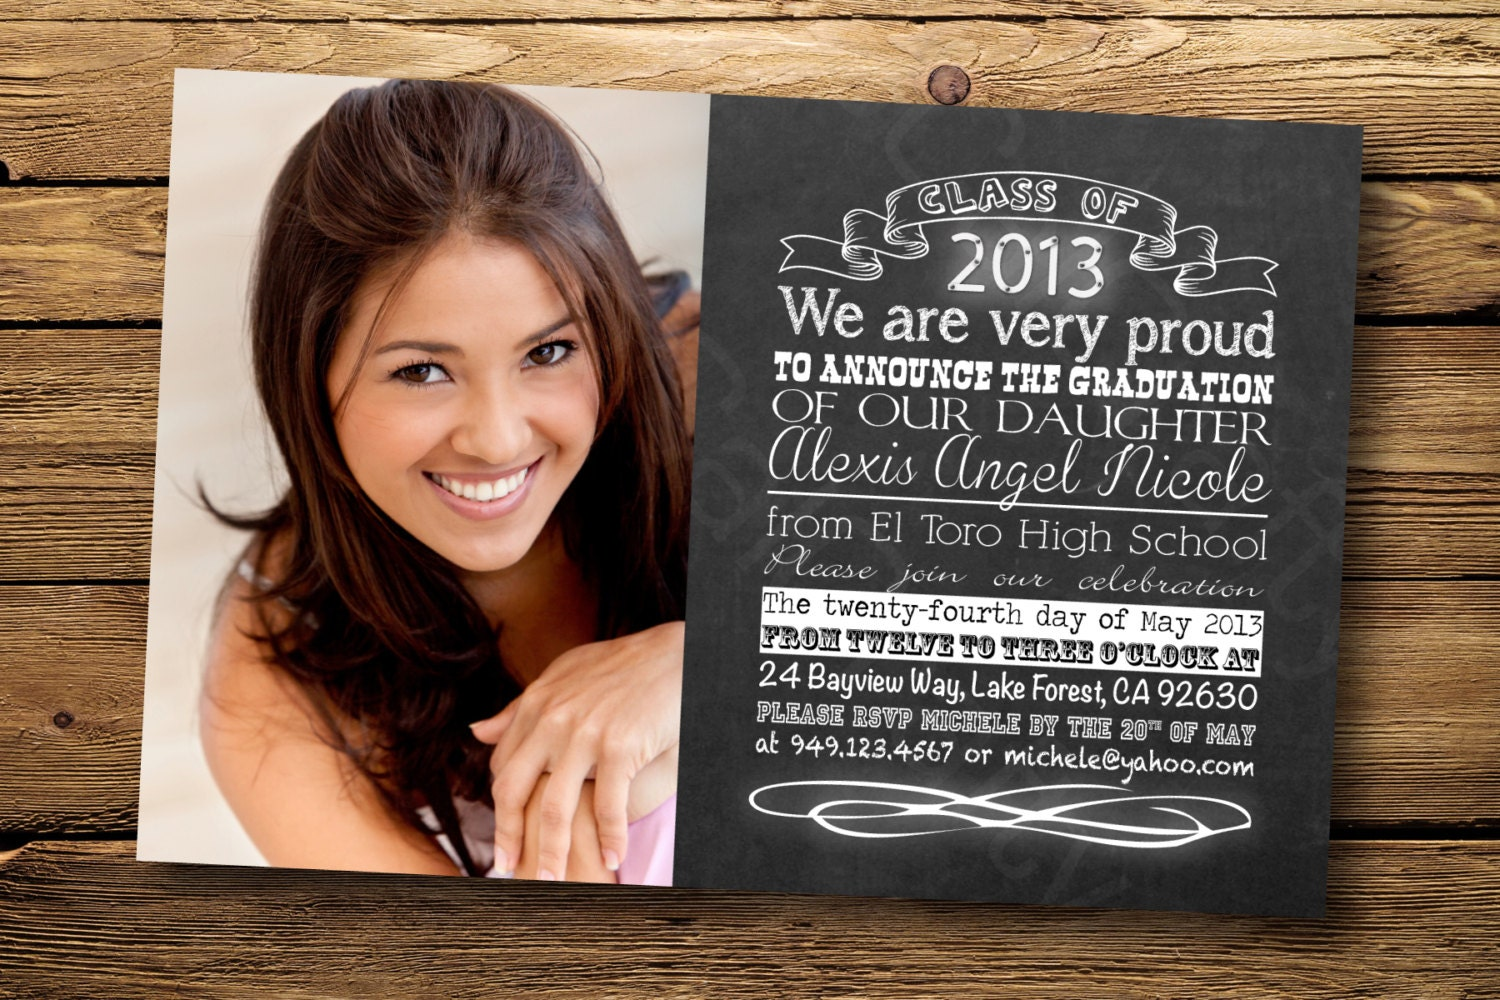 Graduation Photo Party Invitations as awesome invitation layout